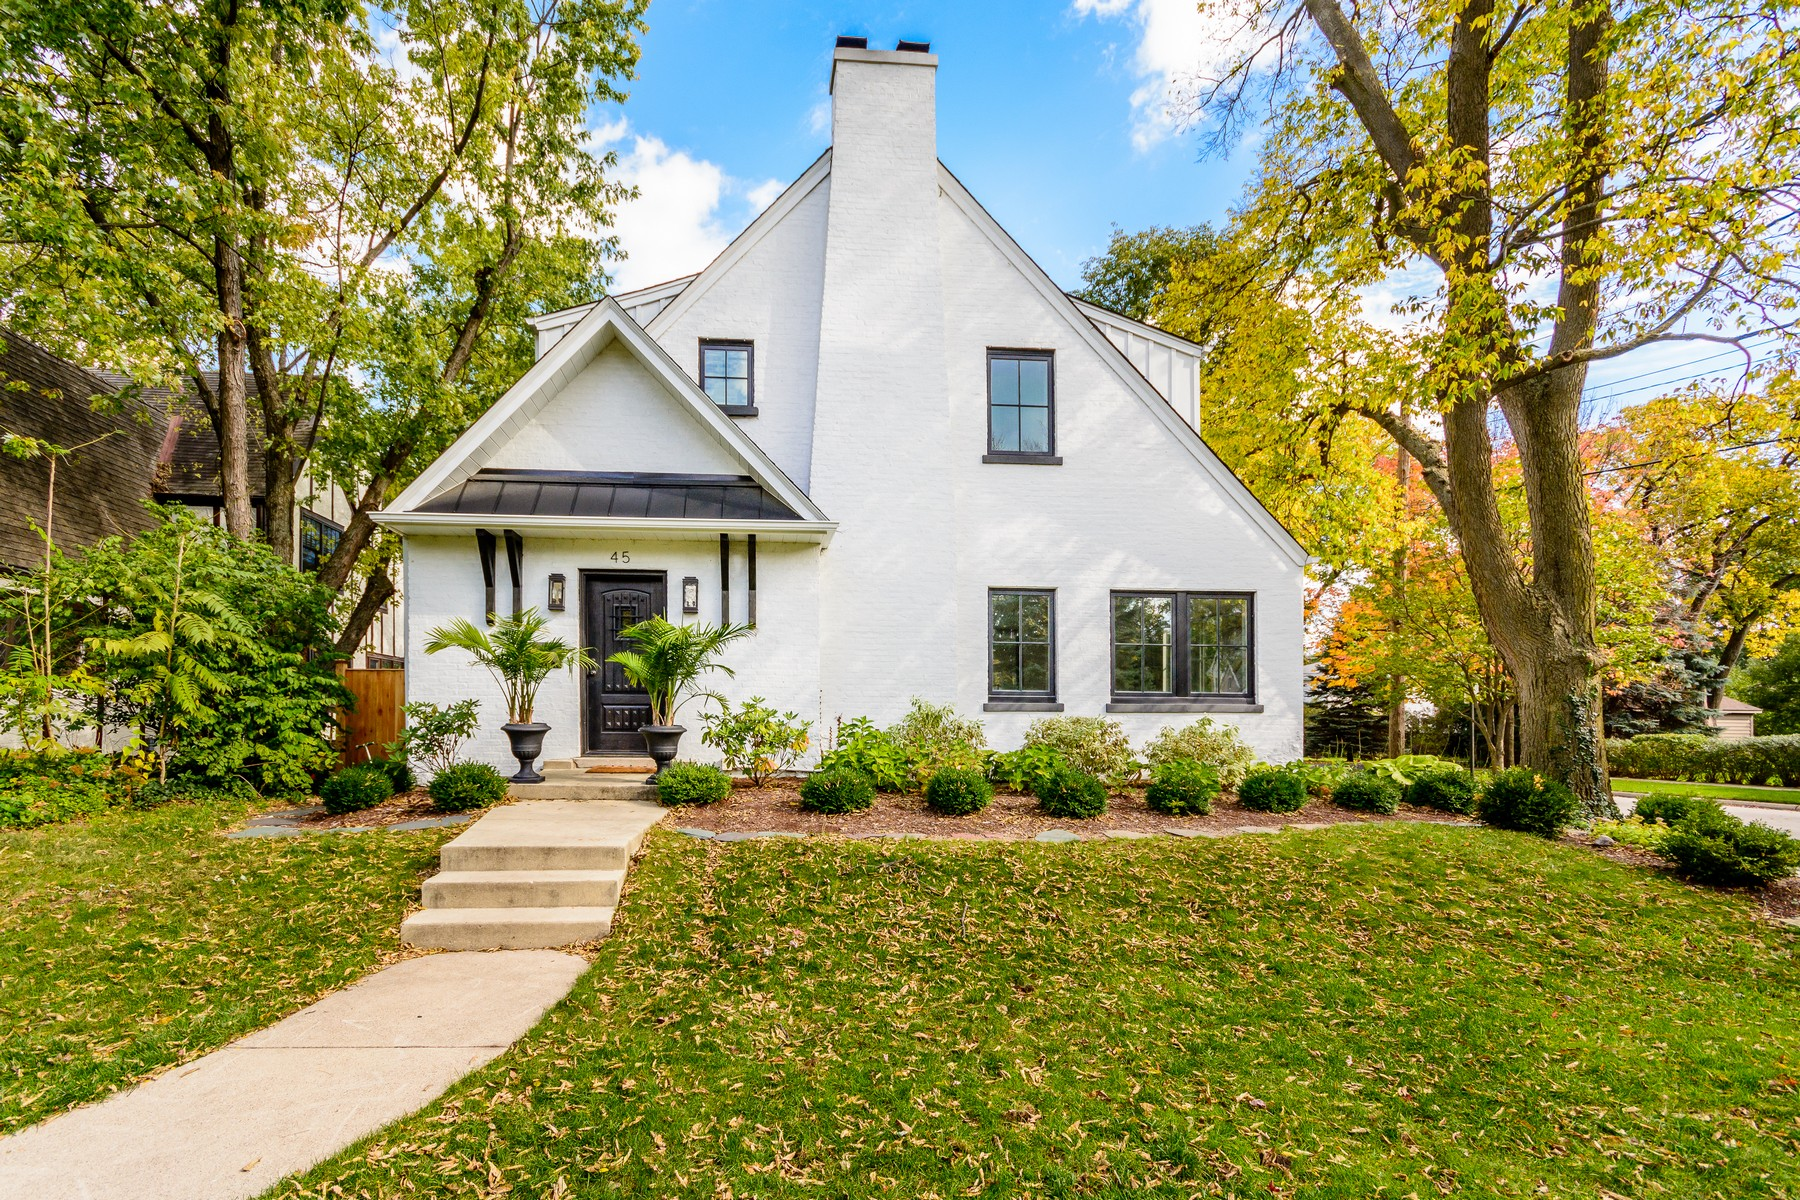 Single Family Home for Sale at 45 Springlake Hinsdale, Illinois, 60521 United States